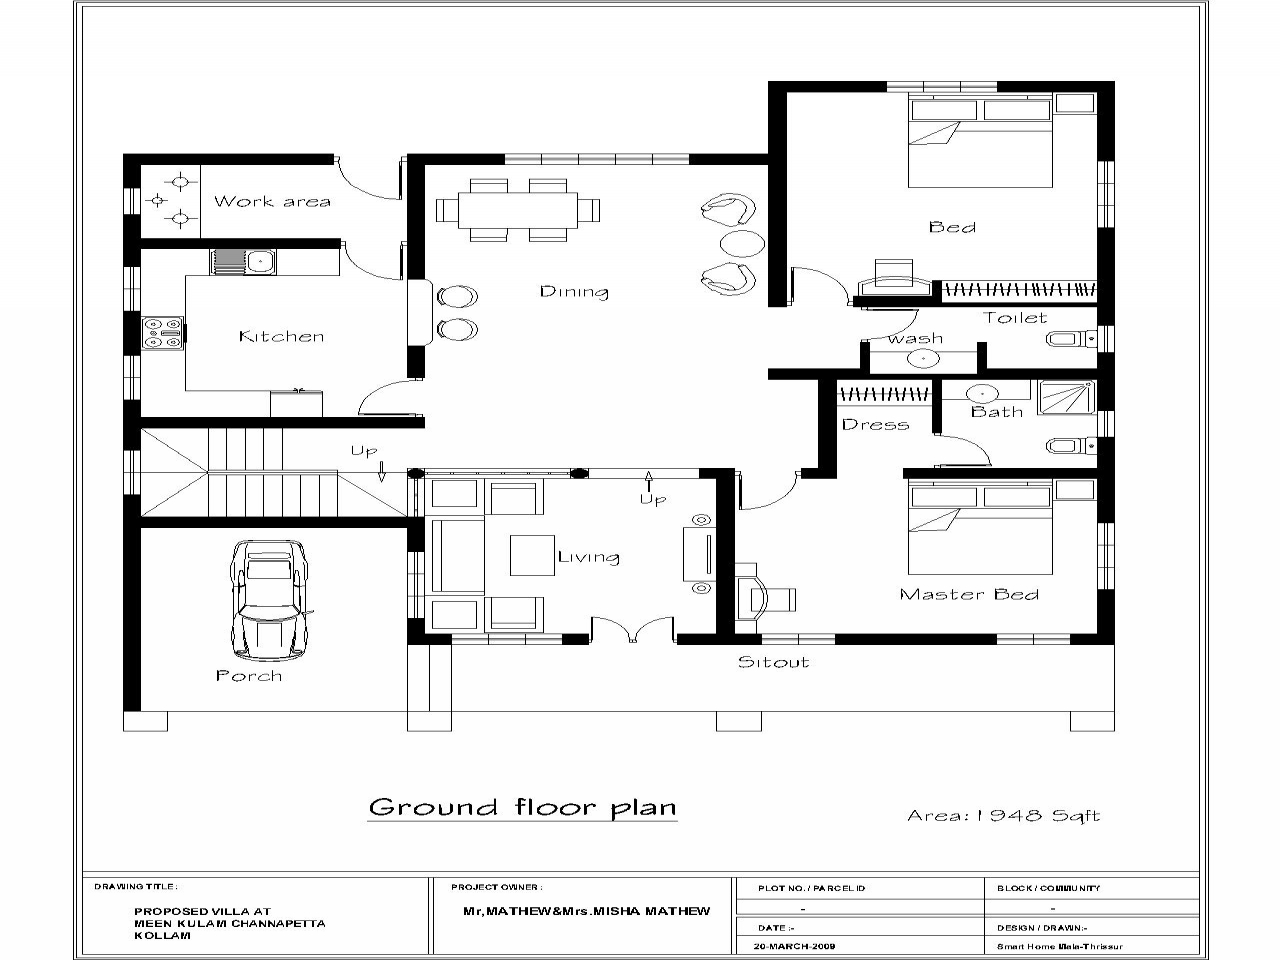 4 bedroom house floor plans 4 bedroom houses for rent for Rental property floor plans